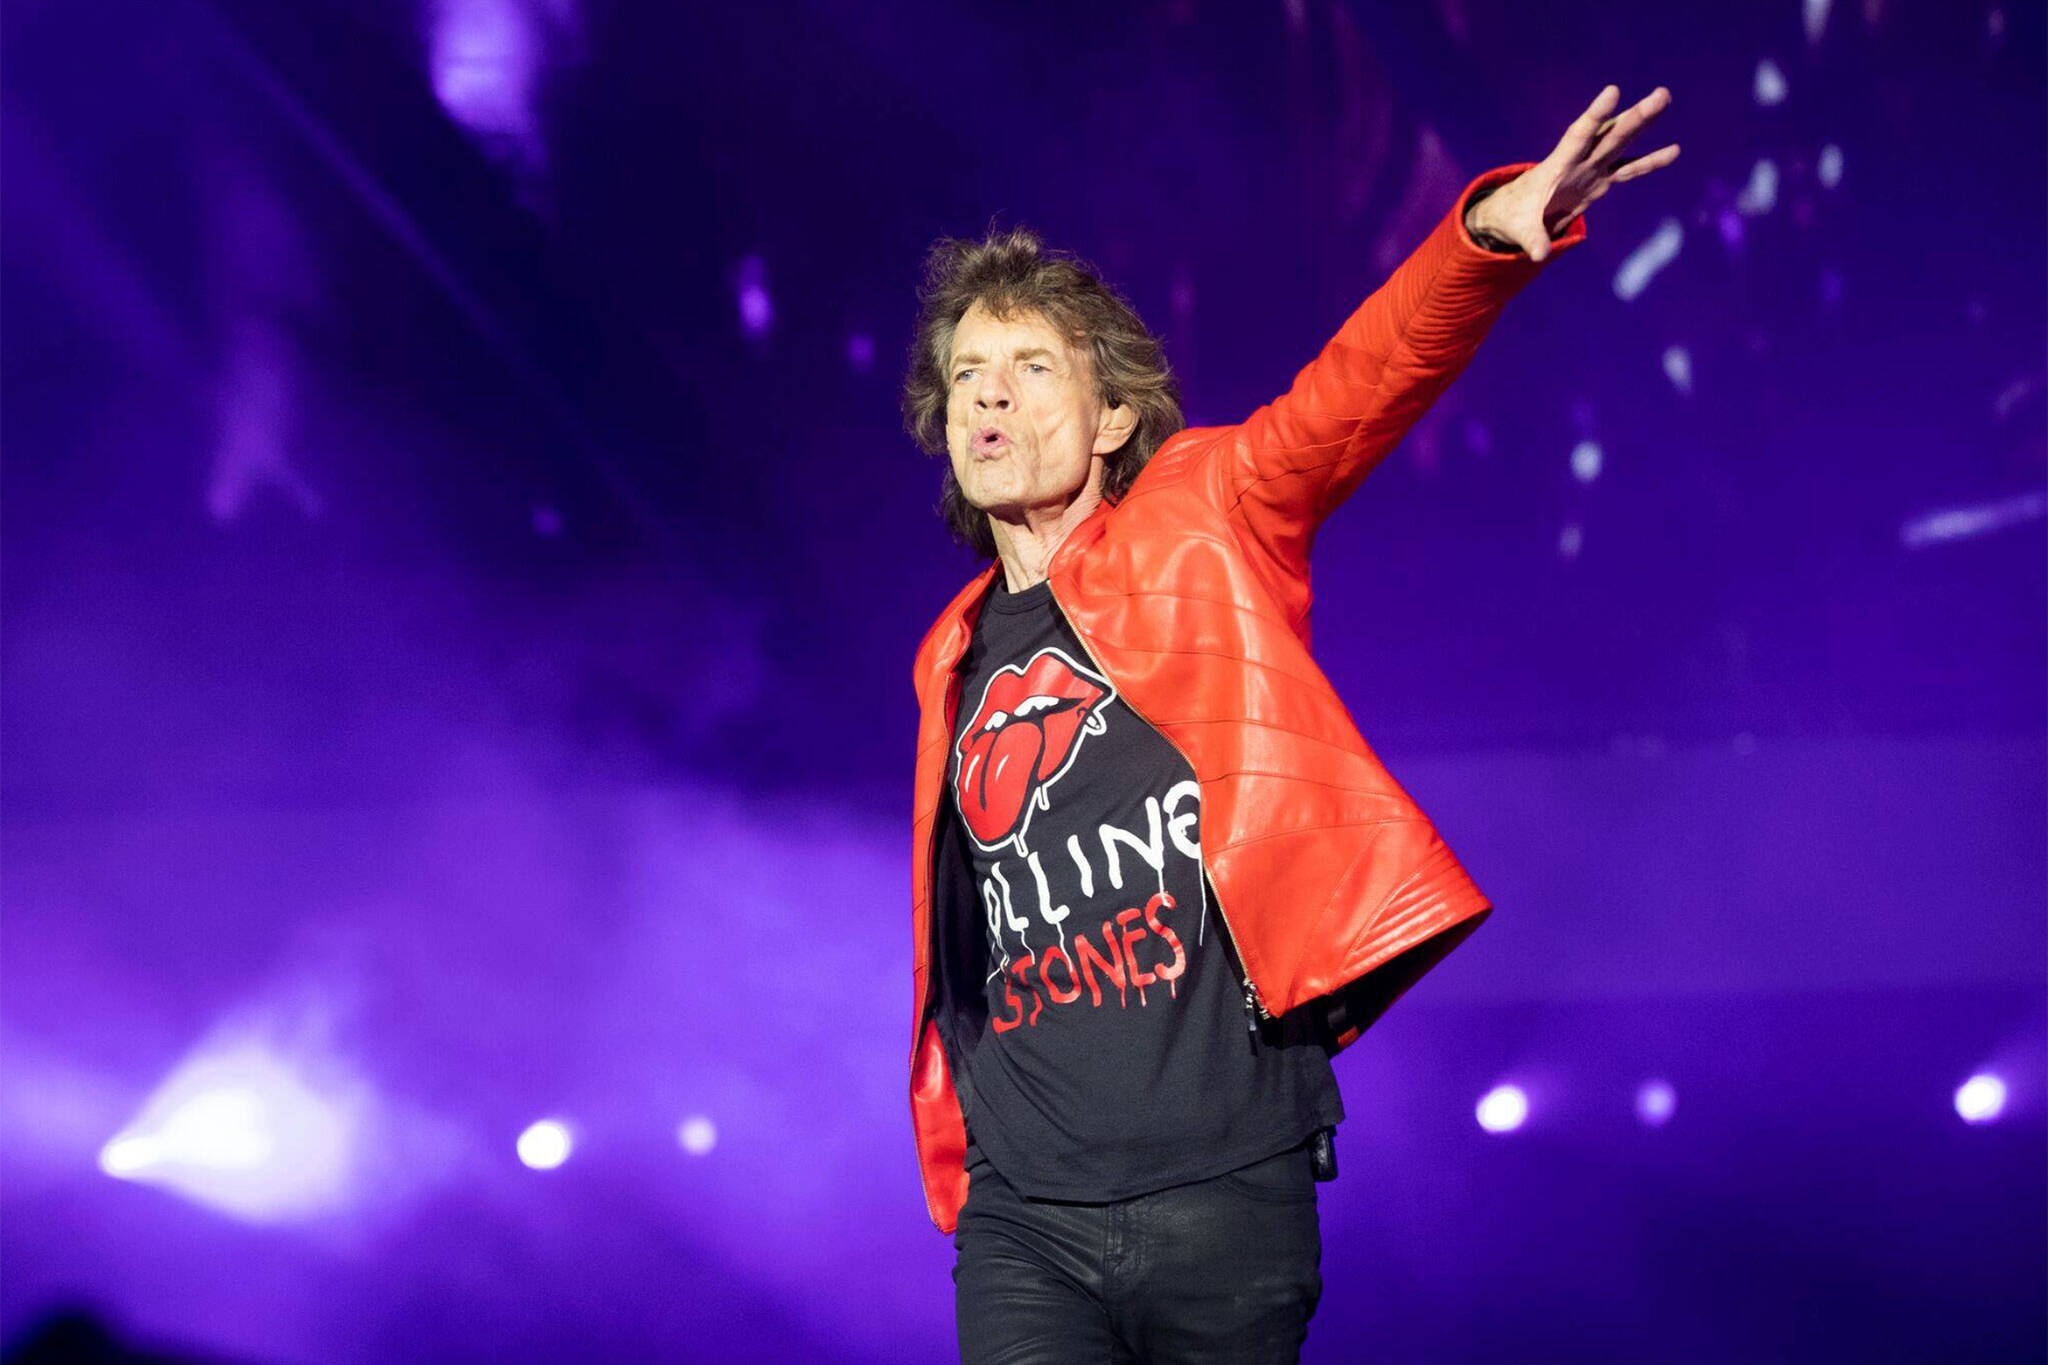 The Rolling Stones are coming to Toronto area on their world